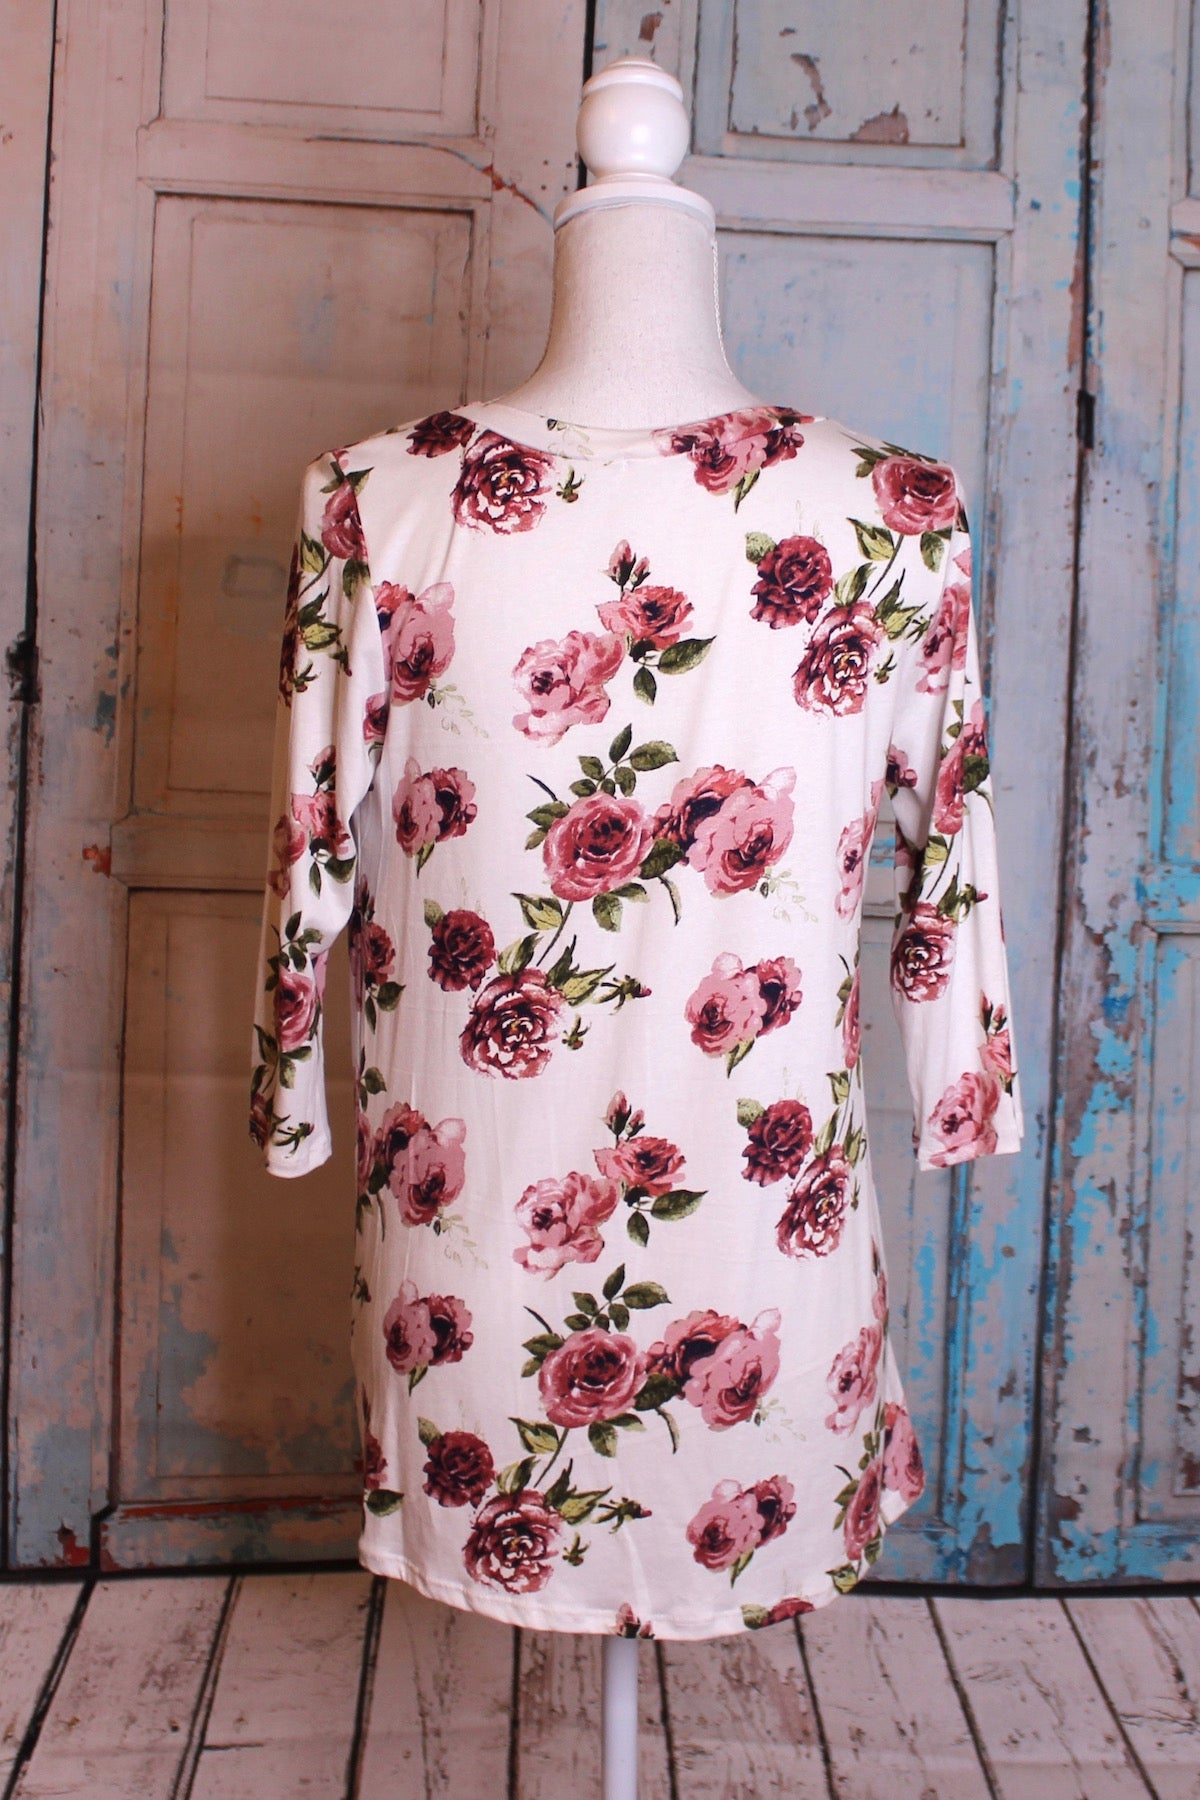 'Stop and Smell the Rosé' Knot Top